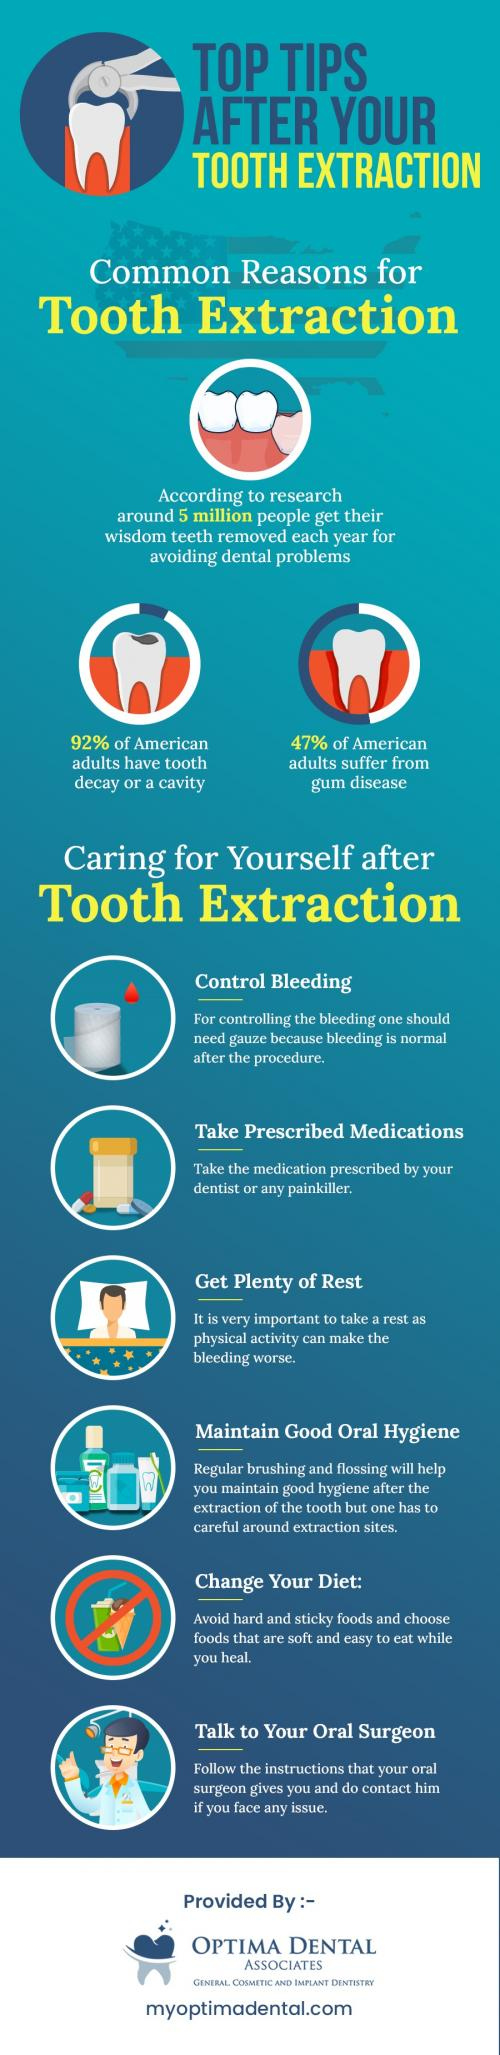 Optima Dental Associates - Wisdom Tooth Extraction in Tinley Park, IL